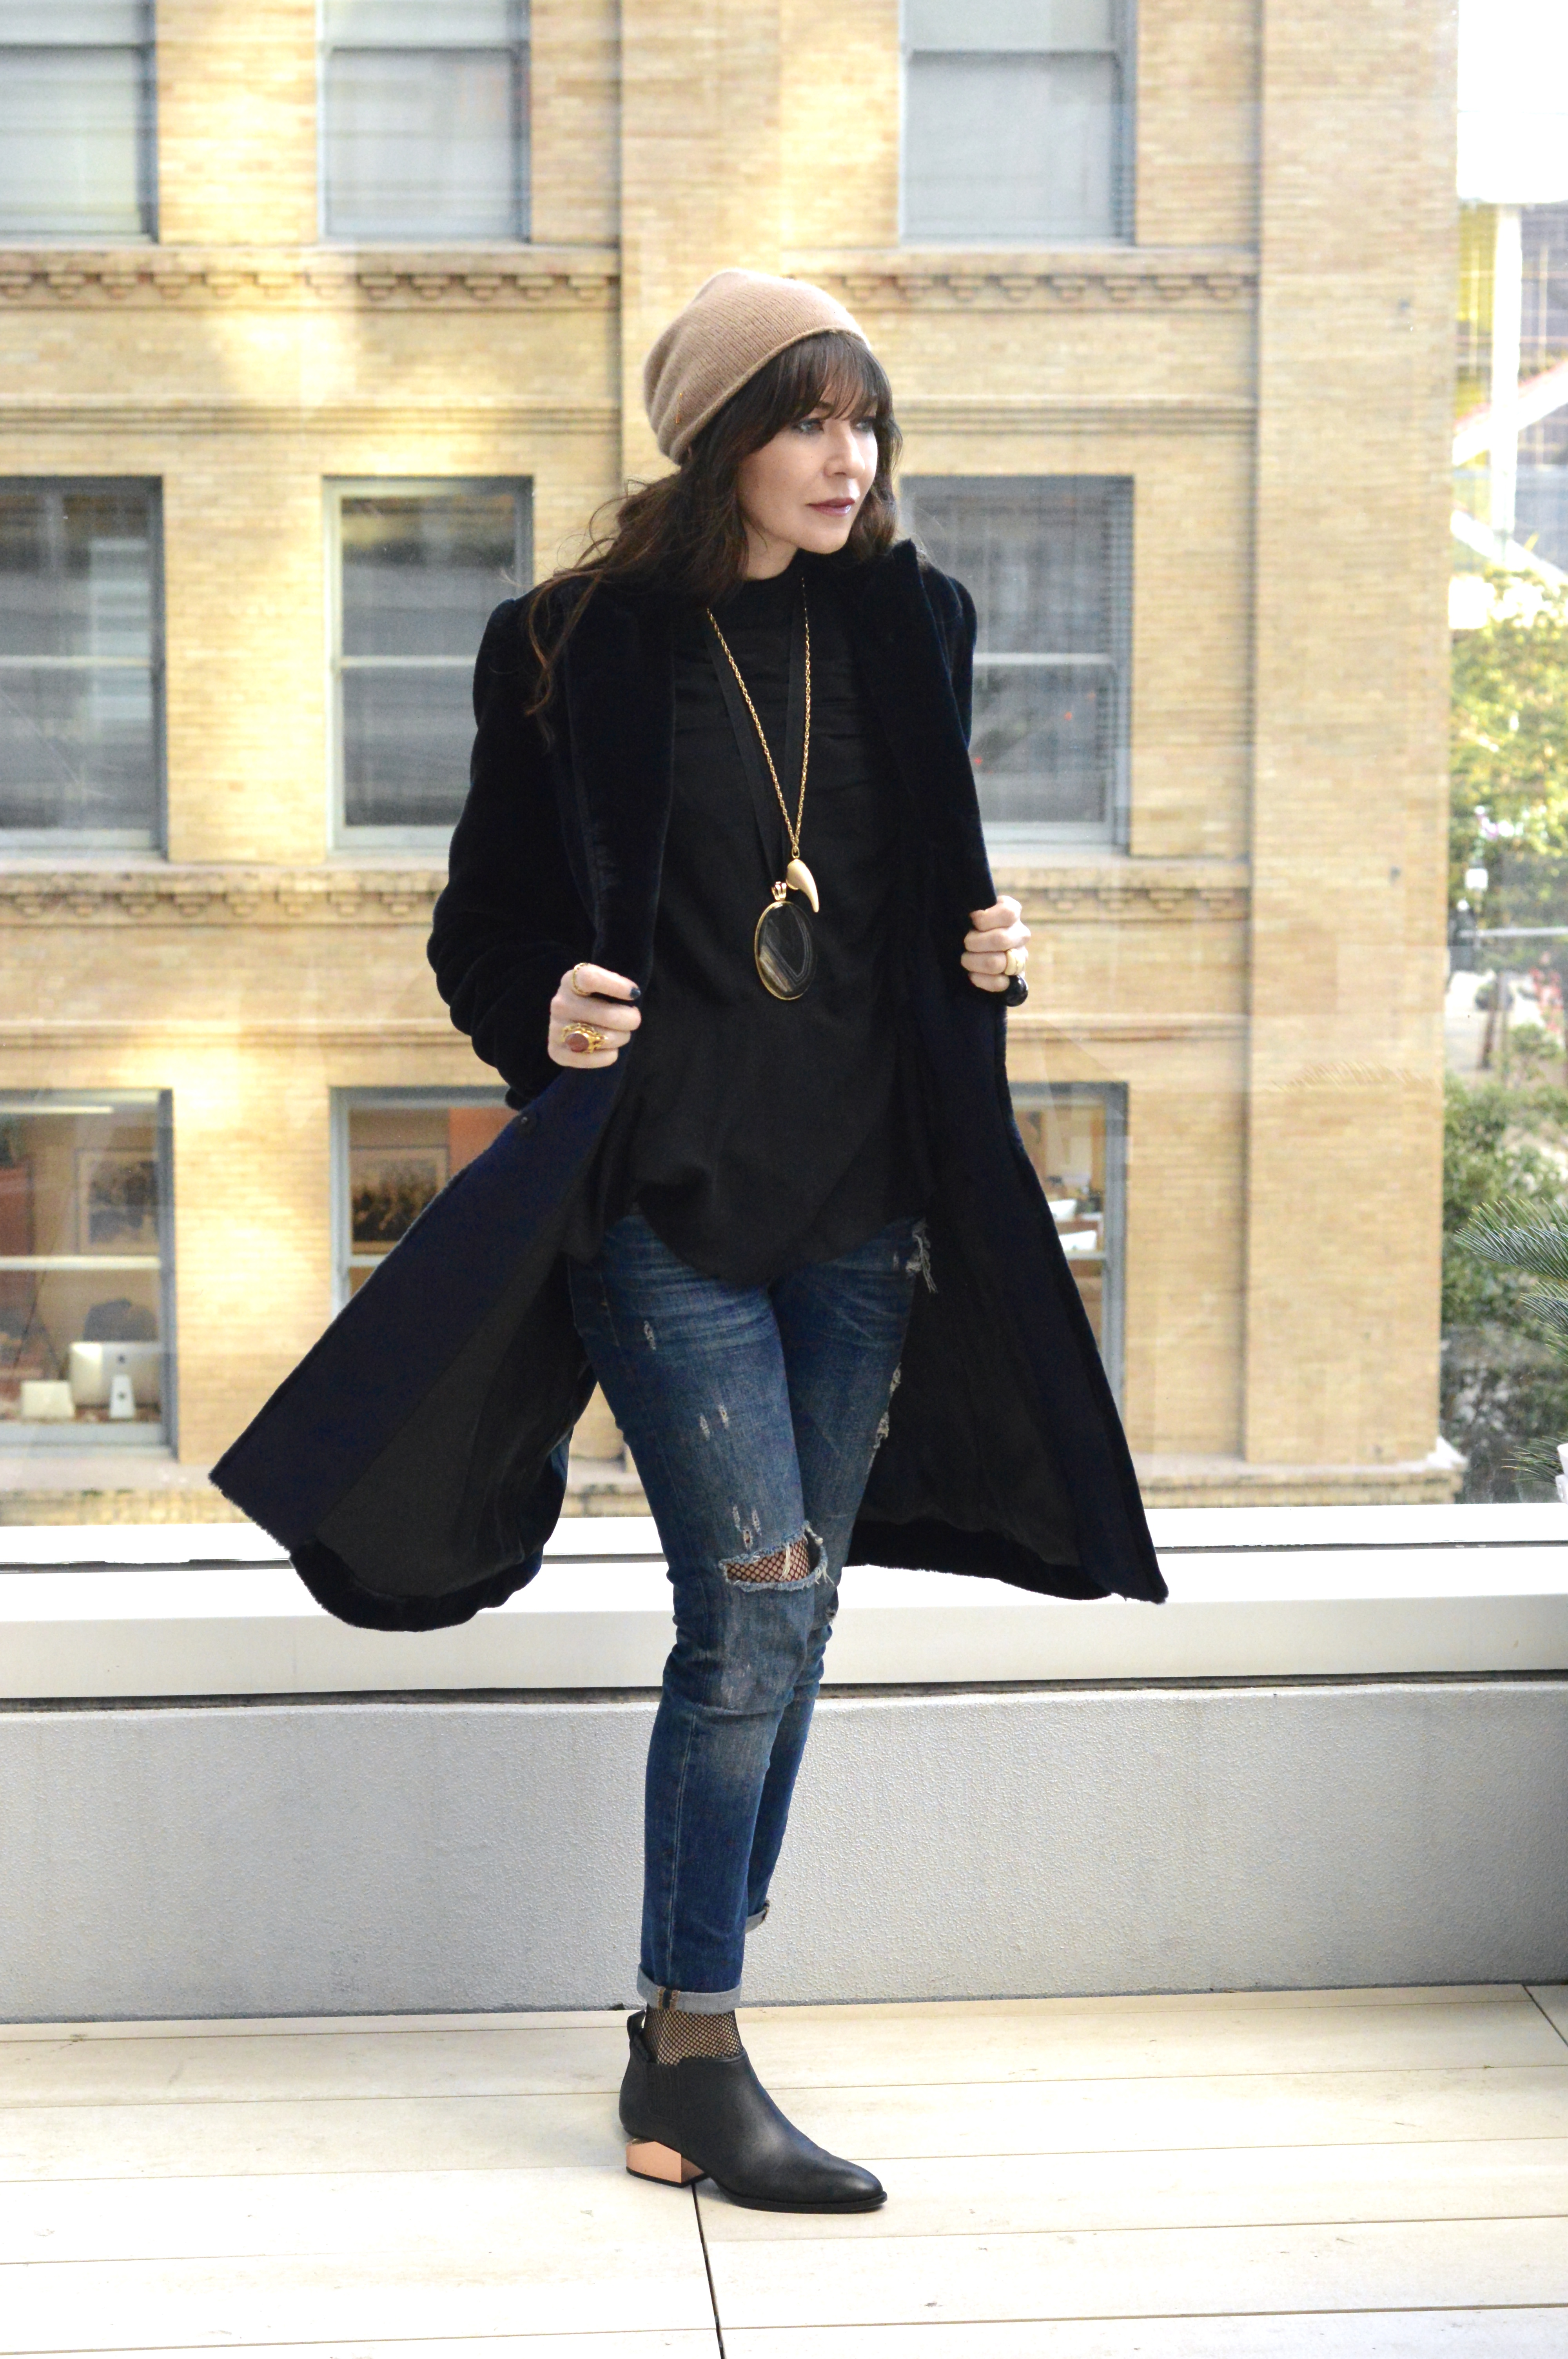 Teddy coat and statement jewels